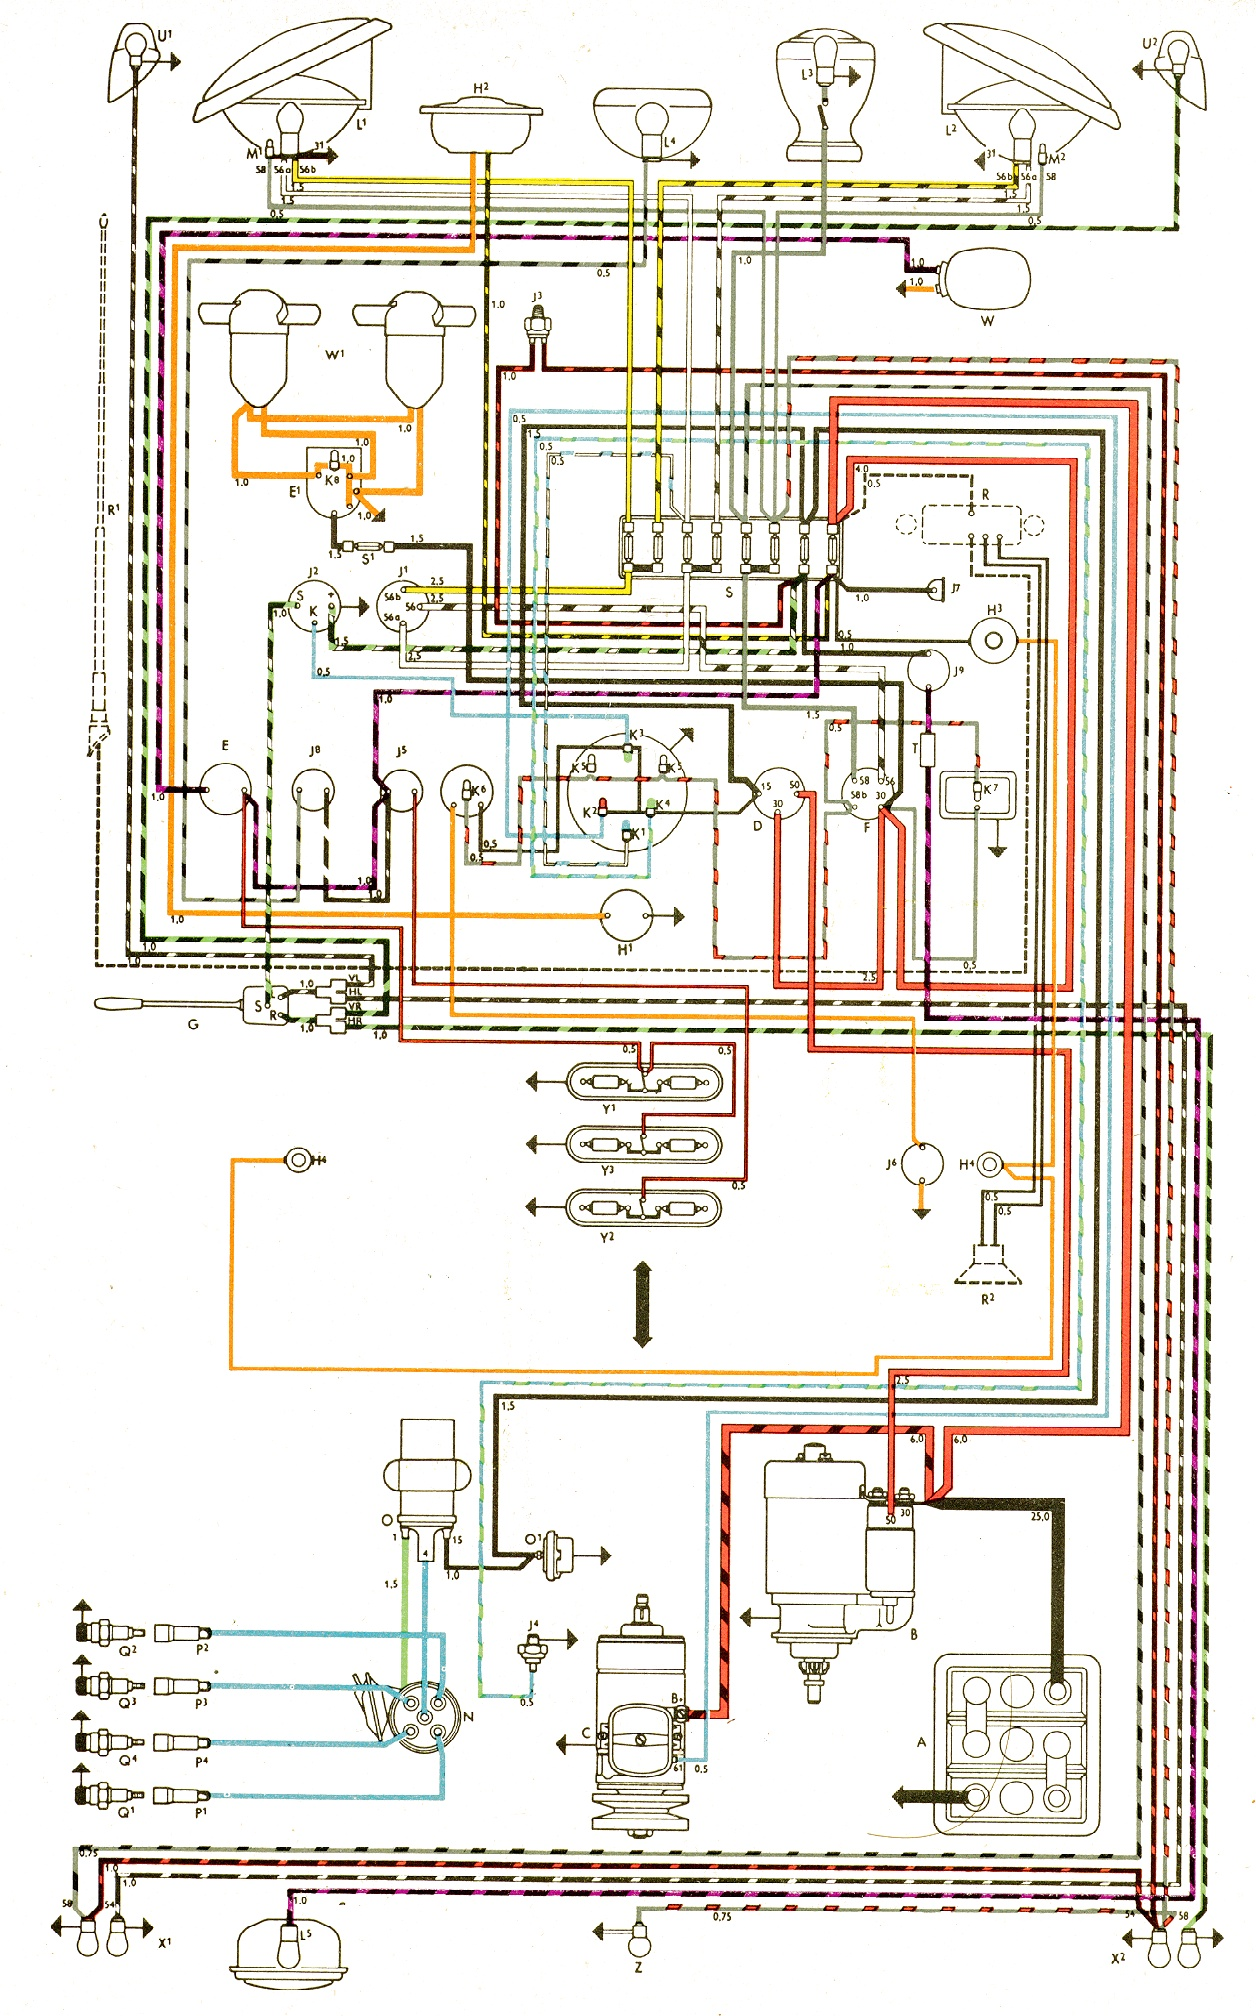 Vw Bus And Other Wiring Diagrams New Beetle Engine Diagram Repair Guide With Schematic Com